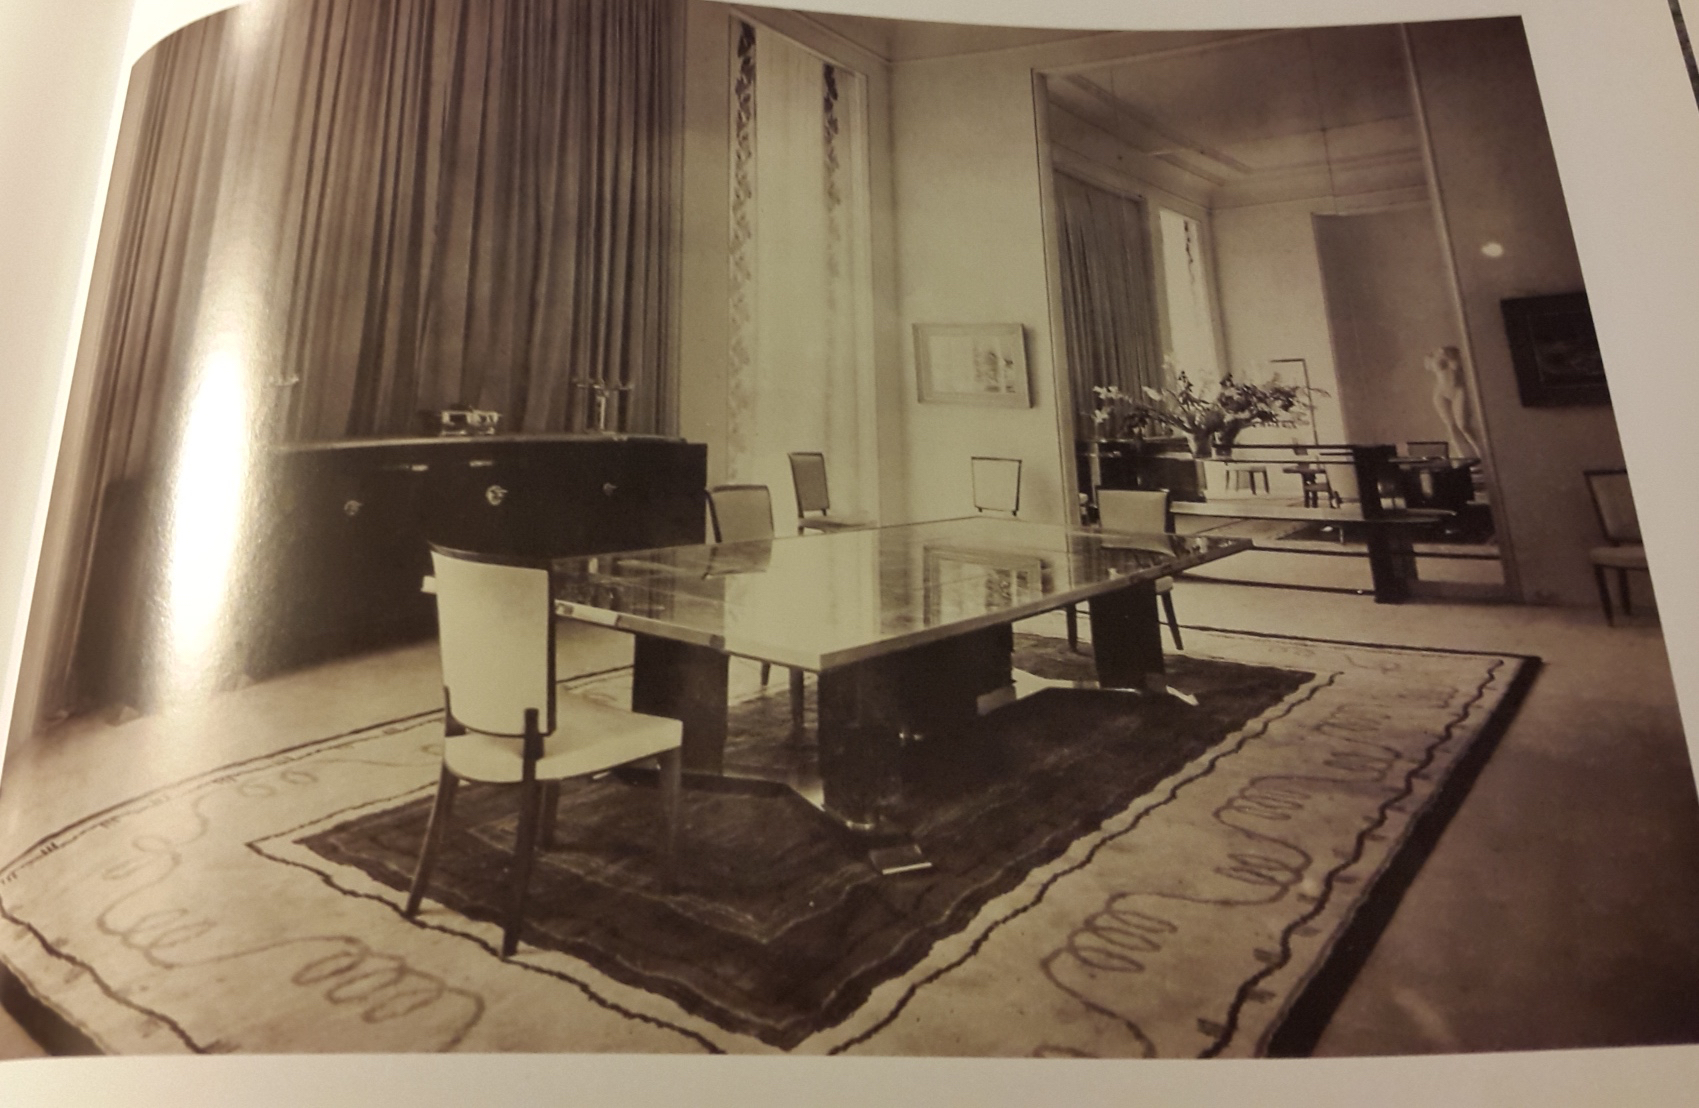 Salon Art Et Deco Paris Jules Leleu Dining Room Table Chairs 1937 Paris Exhibition